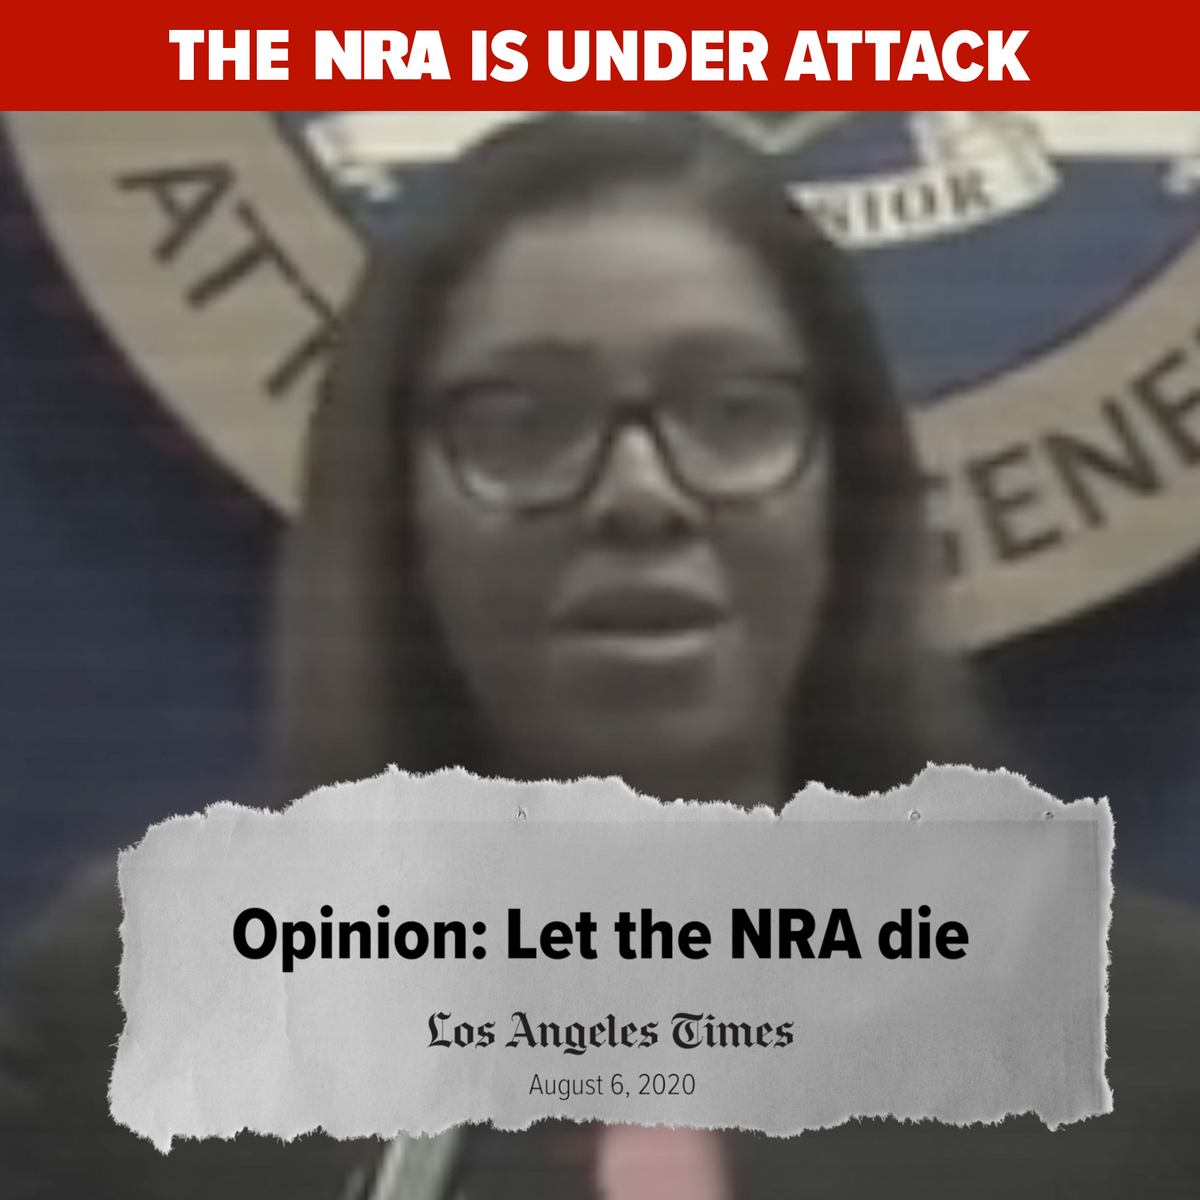 NY AG Letitia James launched an attack aiming to destroy the @NRA.  As one of the nation's most powerful political forces, @NRA members face attacks every single day. Anti-gun elitists, politicians, and the media label us terrorists, killers, and worse.  We will NEVER back down.